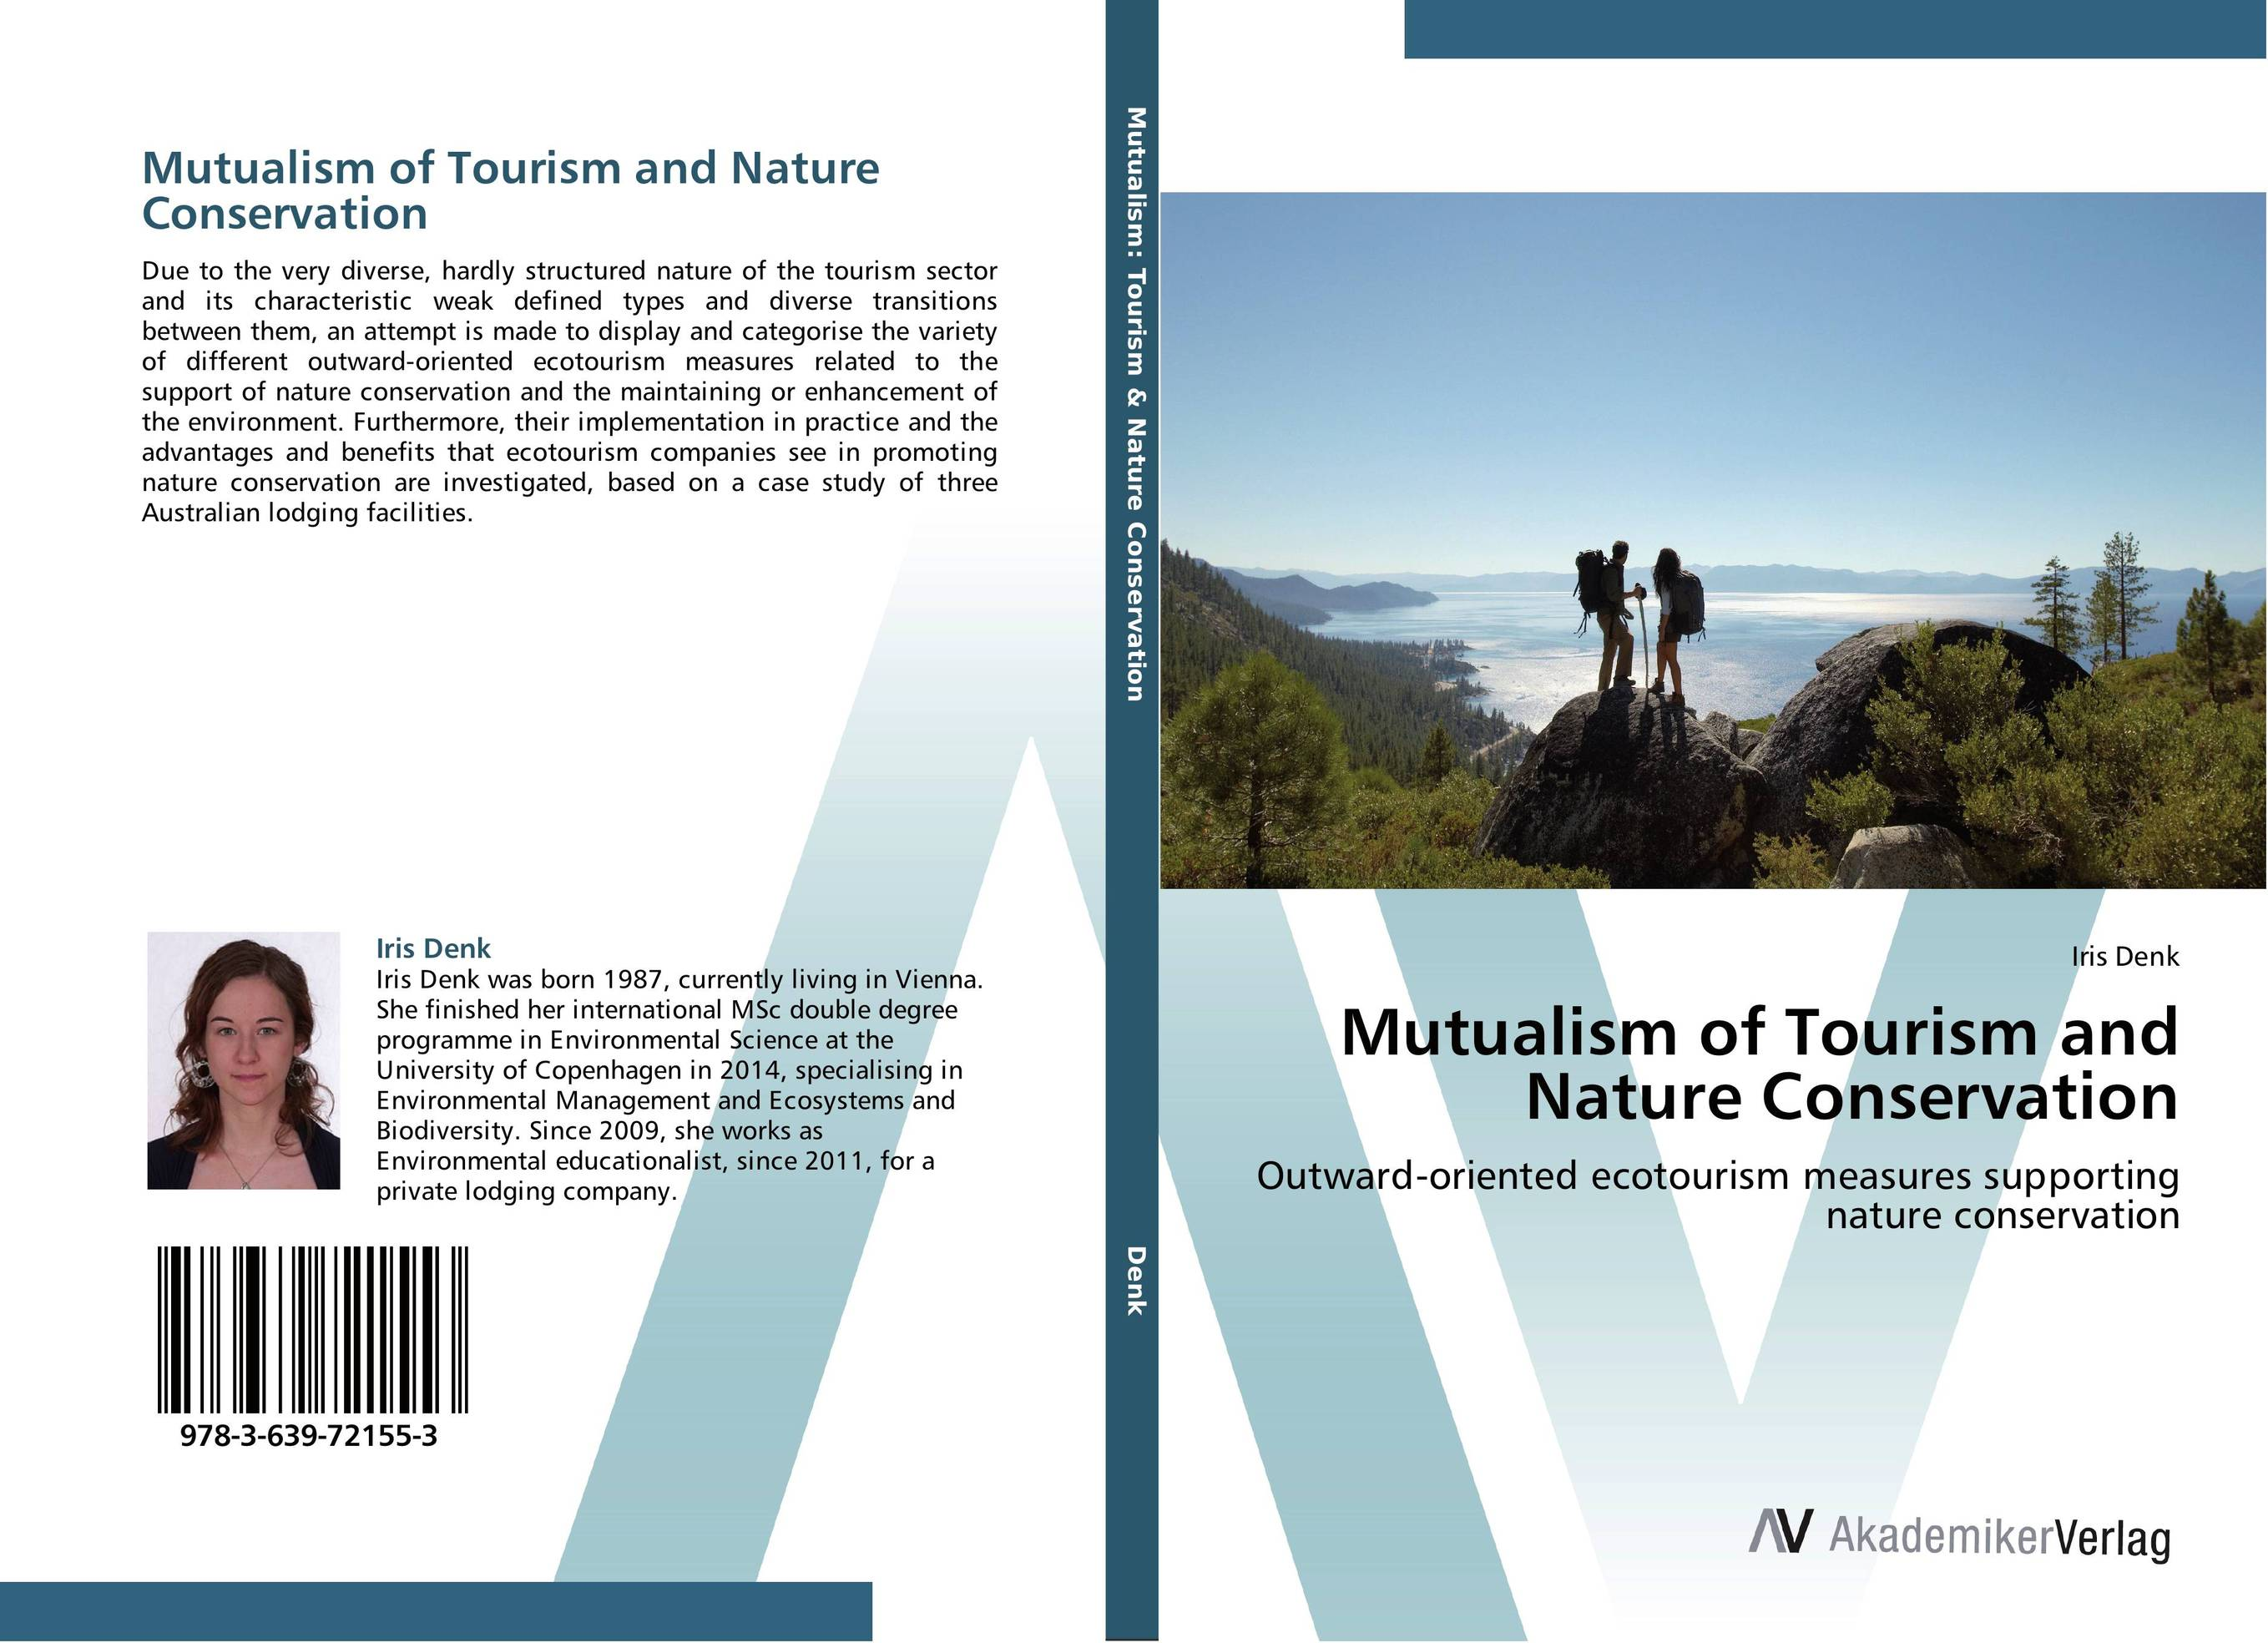 Mutualism of Tourism and Nature Conservation